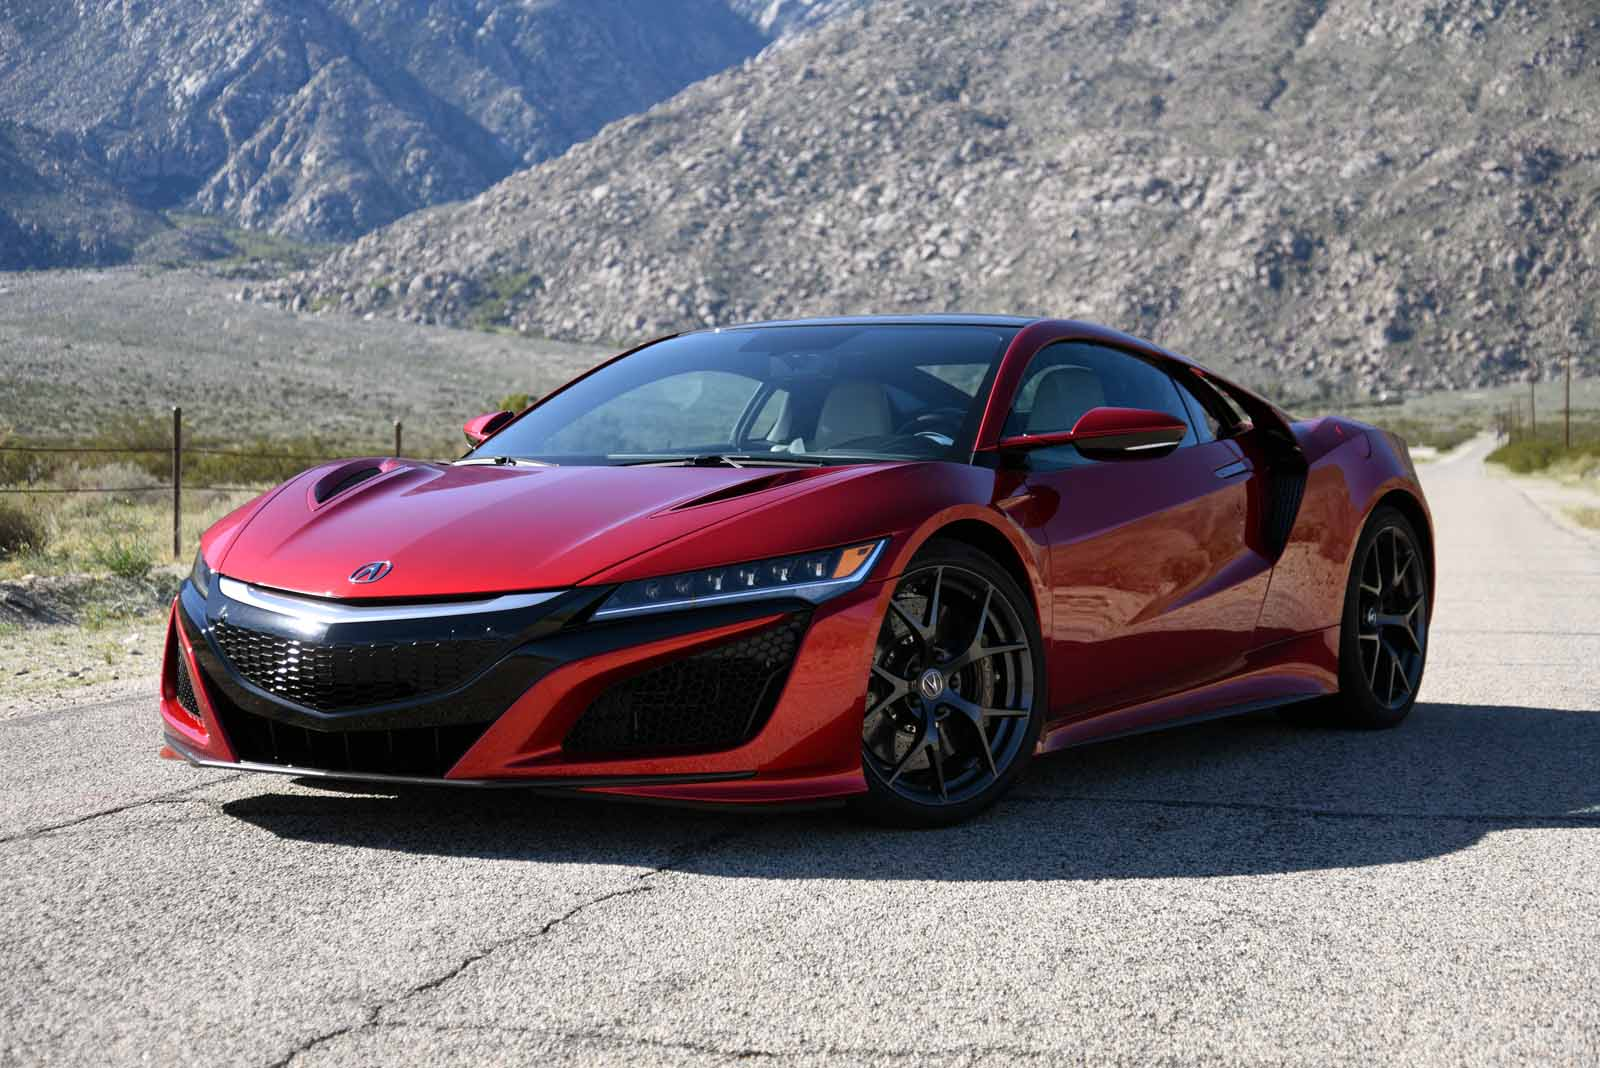 2019 Acura NSX Concept photo - 6